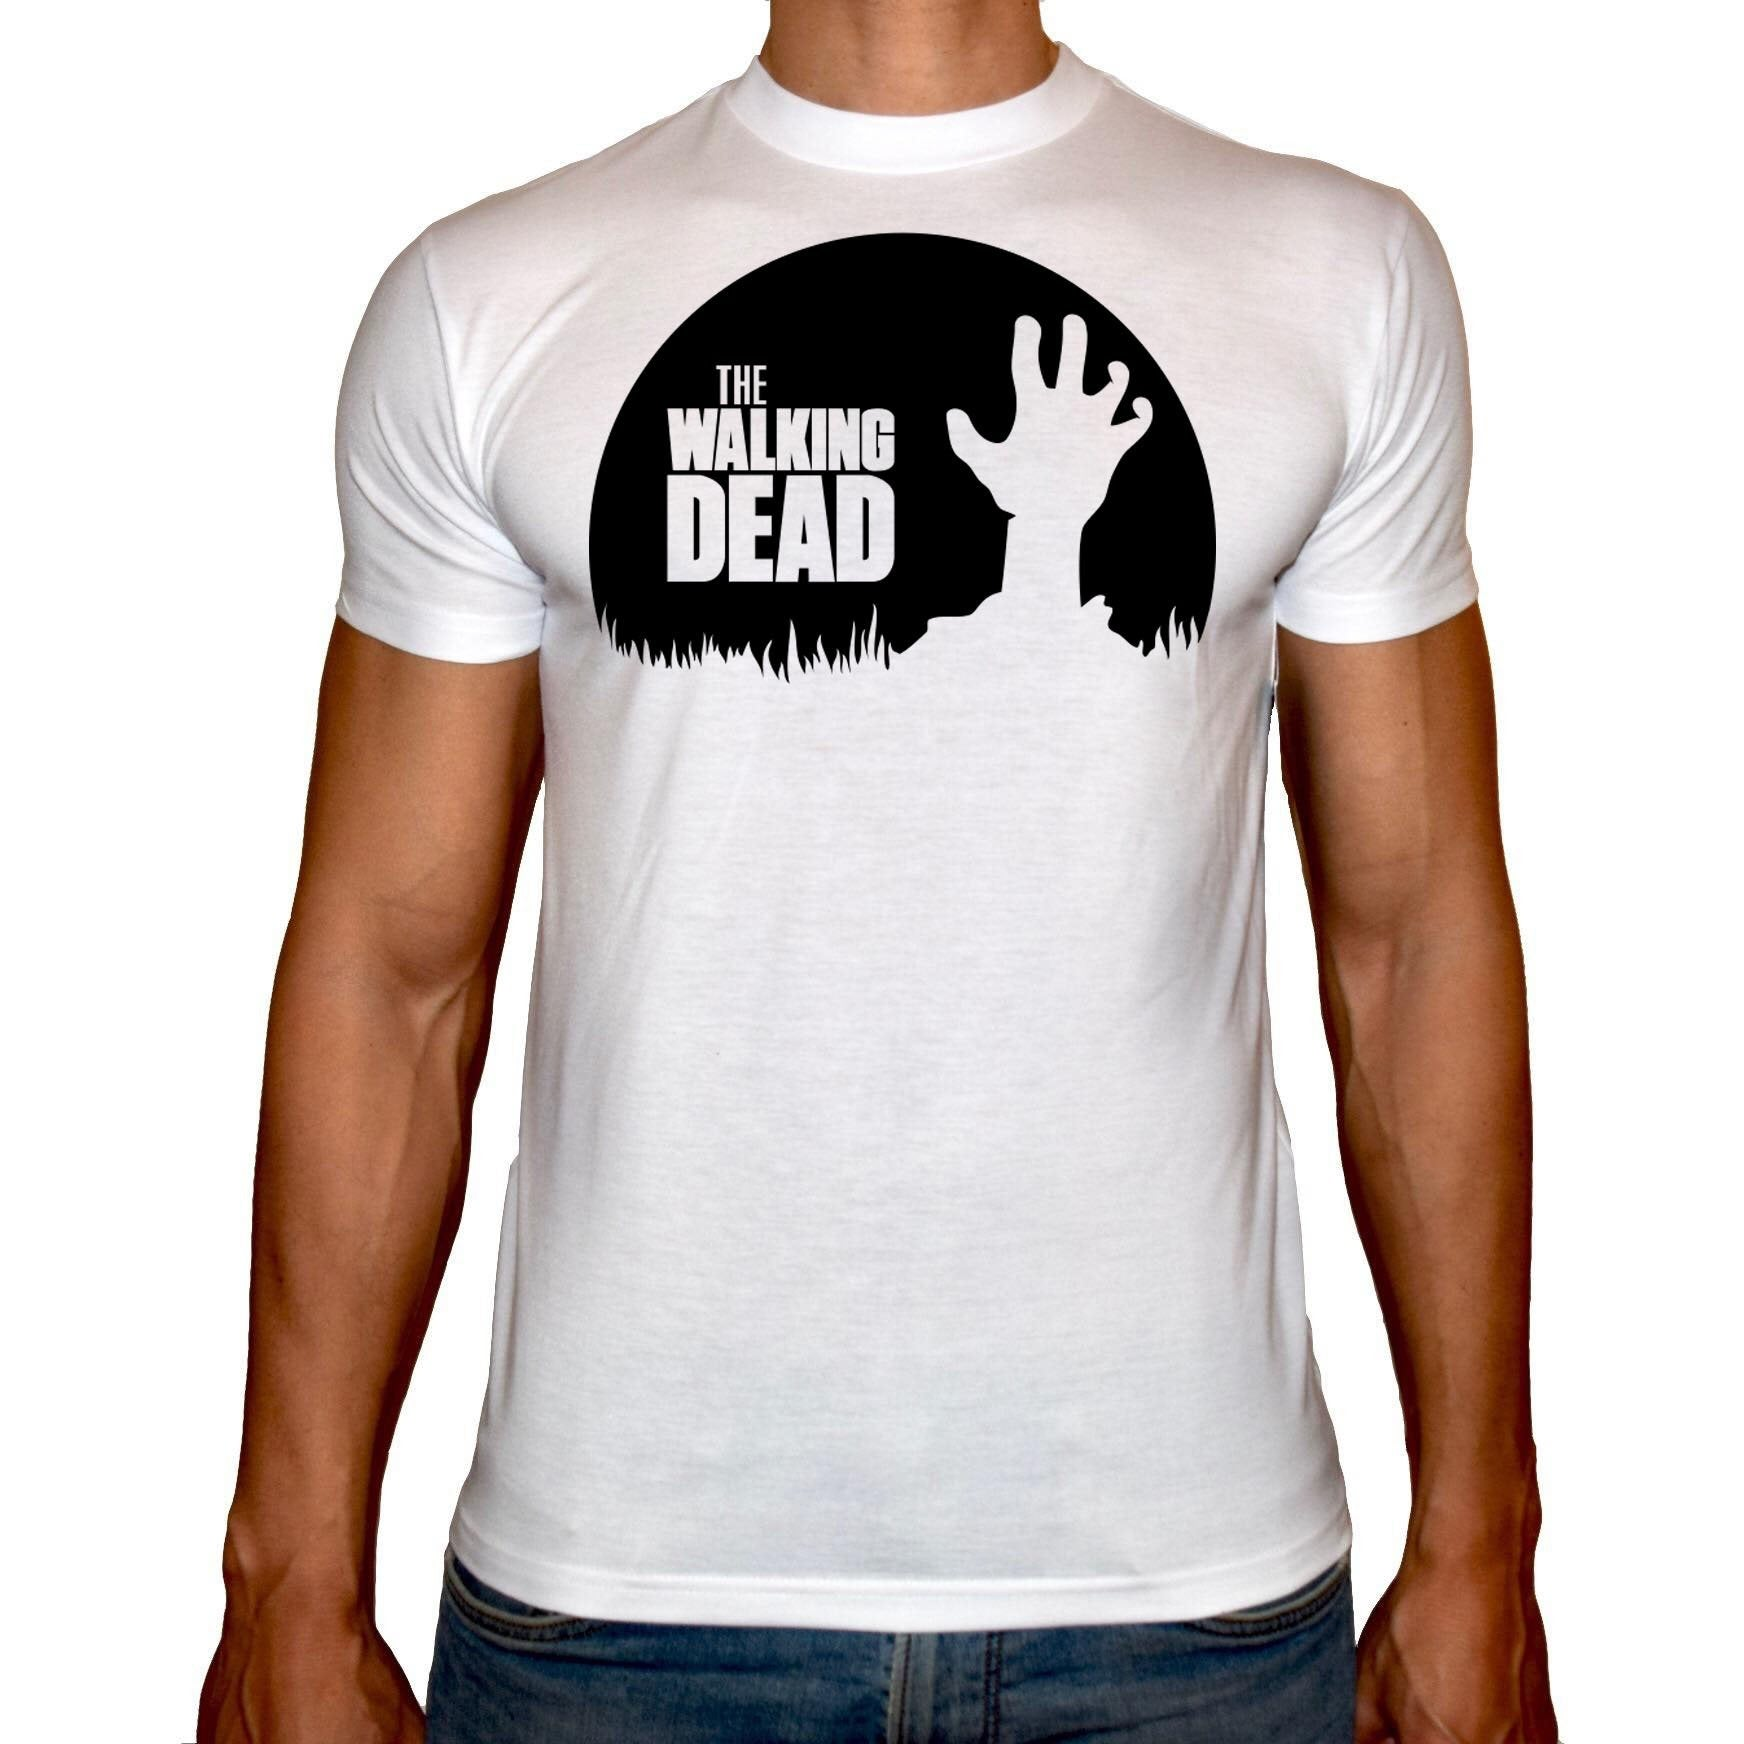 Phoenix WHITE Round Neck Printed T-Shirt Men (The walking dead)